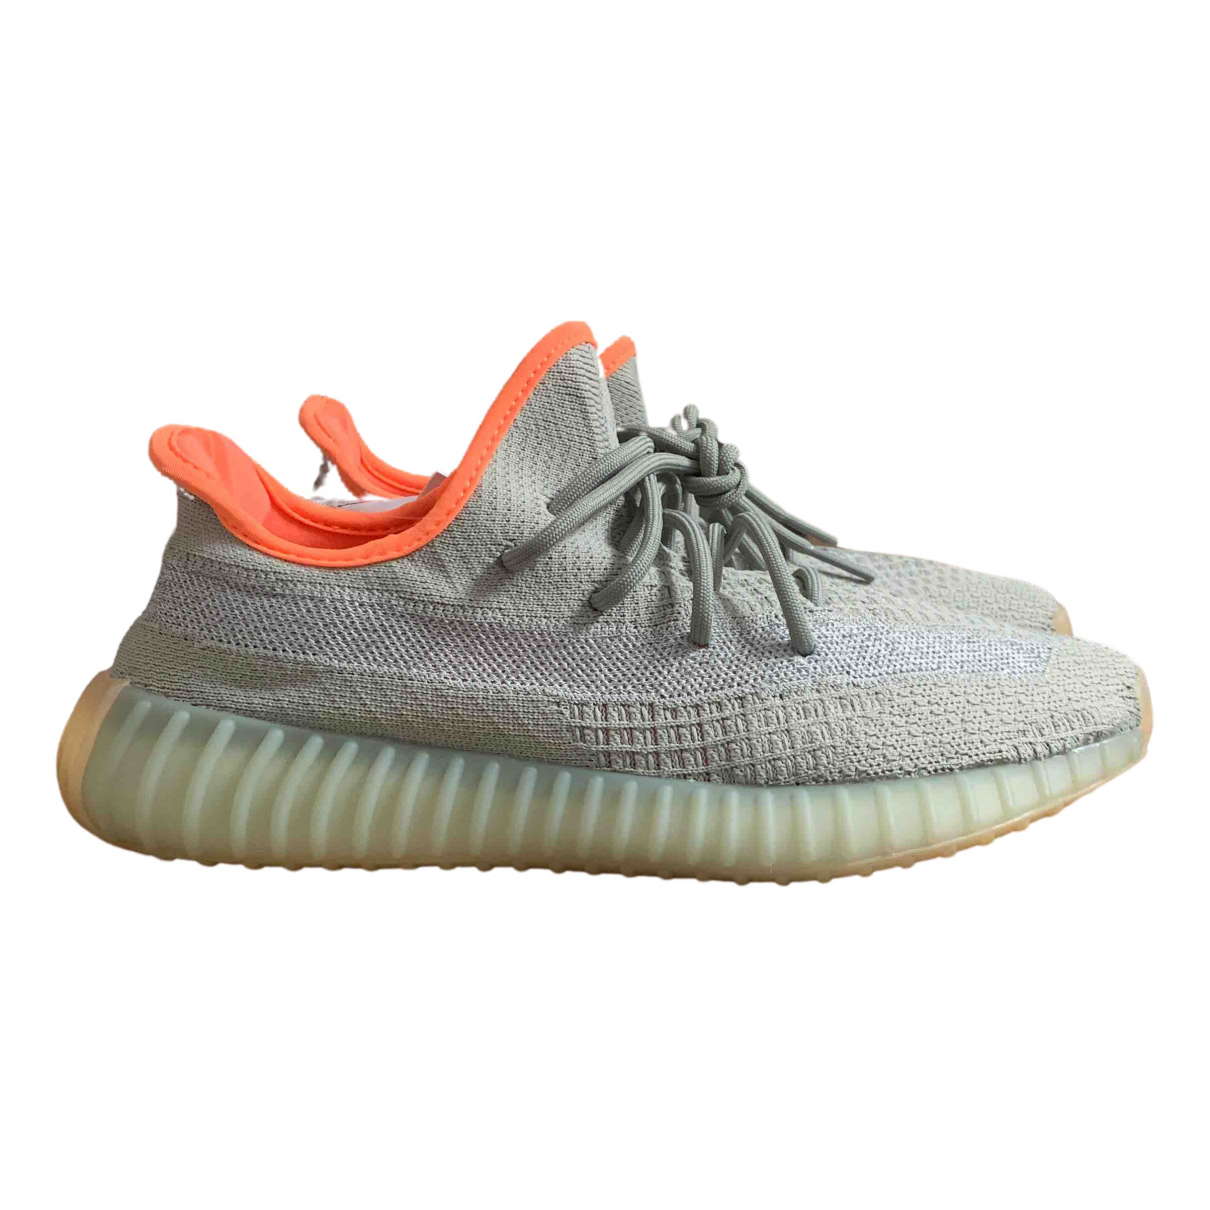 Yeezy X Adidas Boost 350 V2 Green Cloth Trainers for Men 9 UK